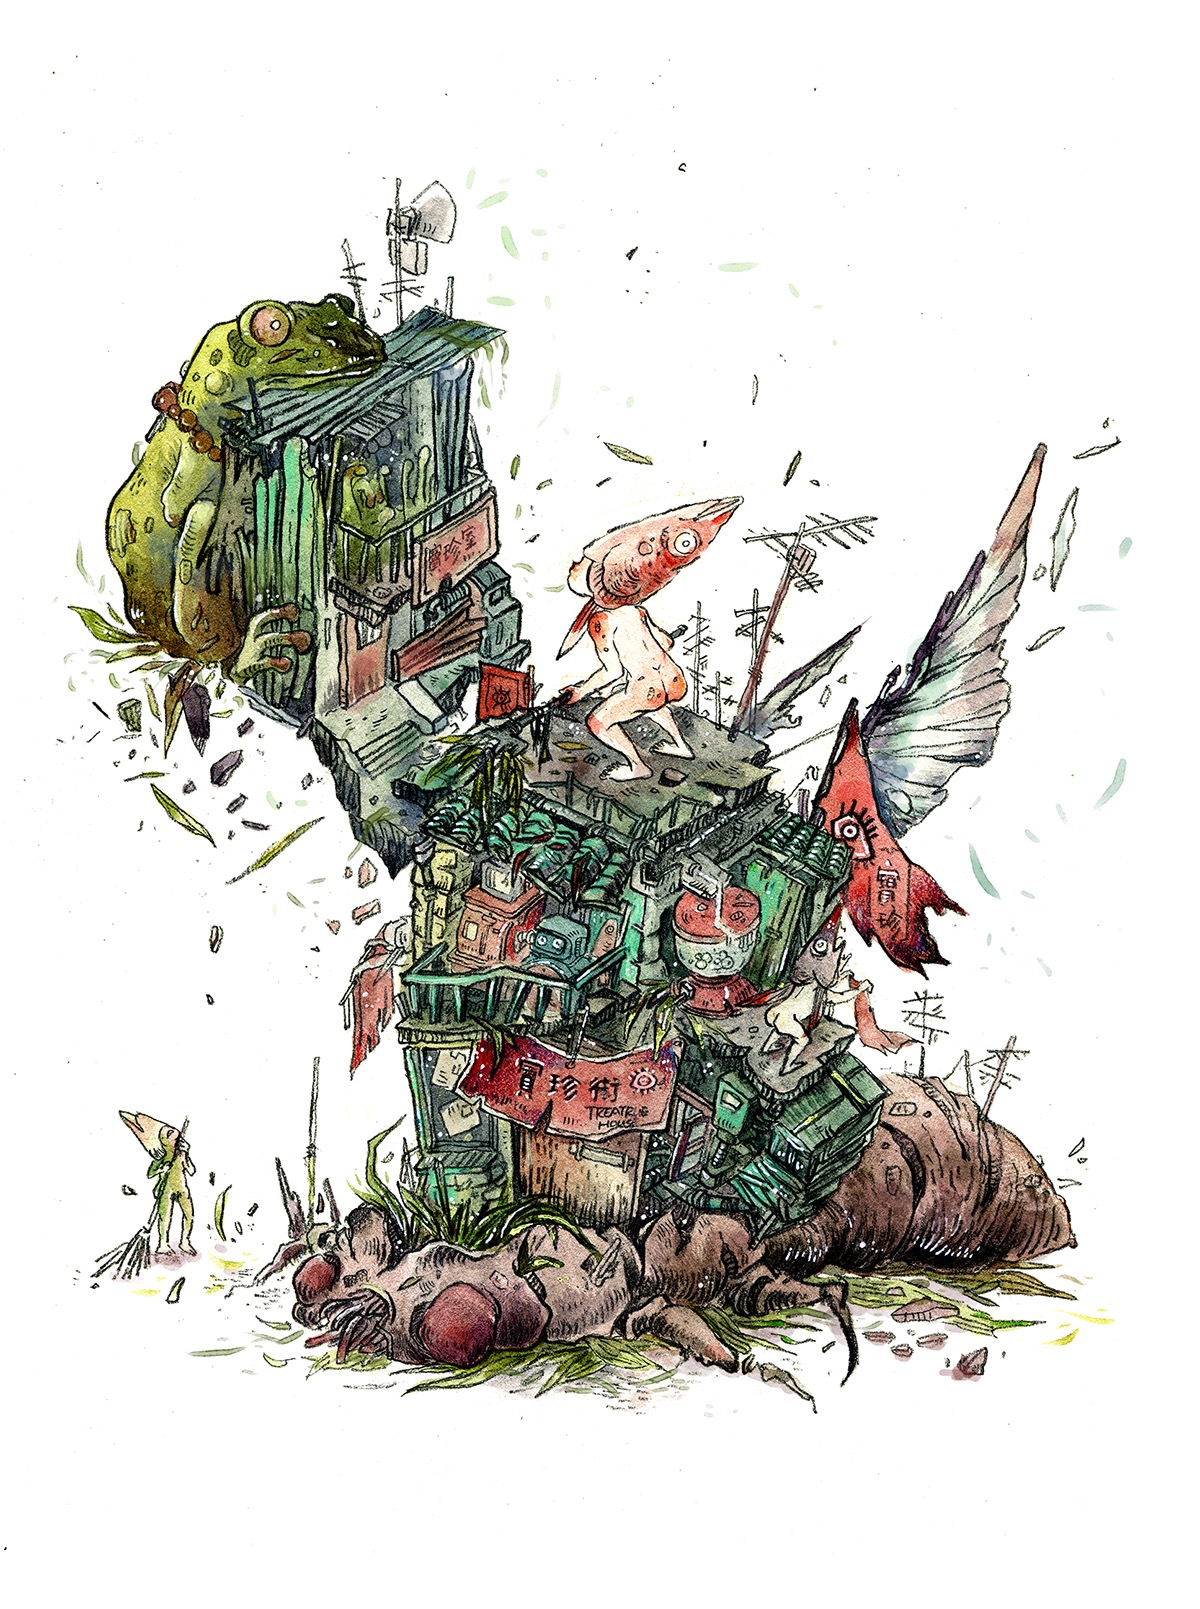 An illustration of a town built on top of a dead bug